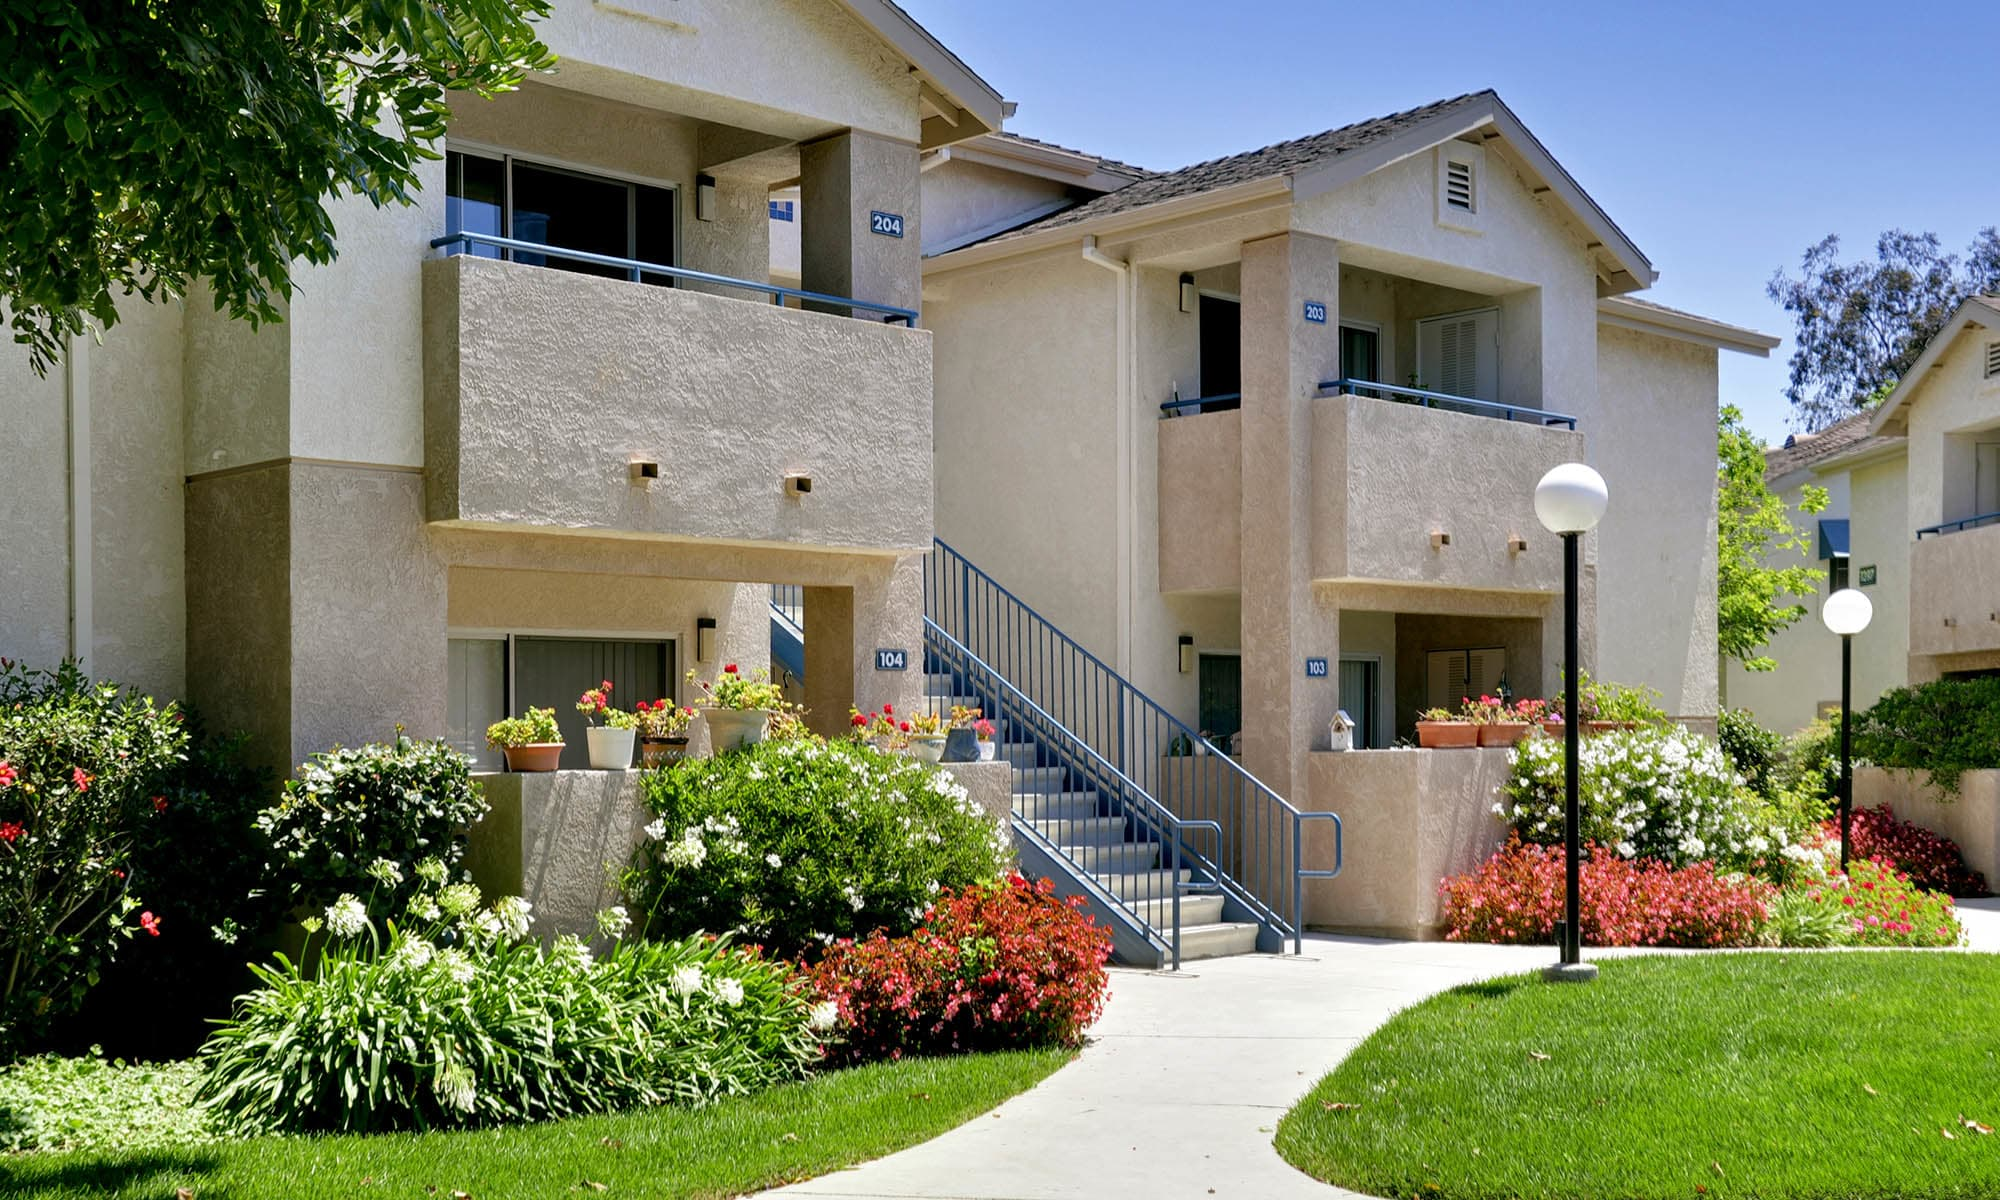 Welcome to our senior apartments in Ventura, CA